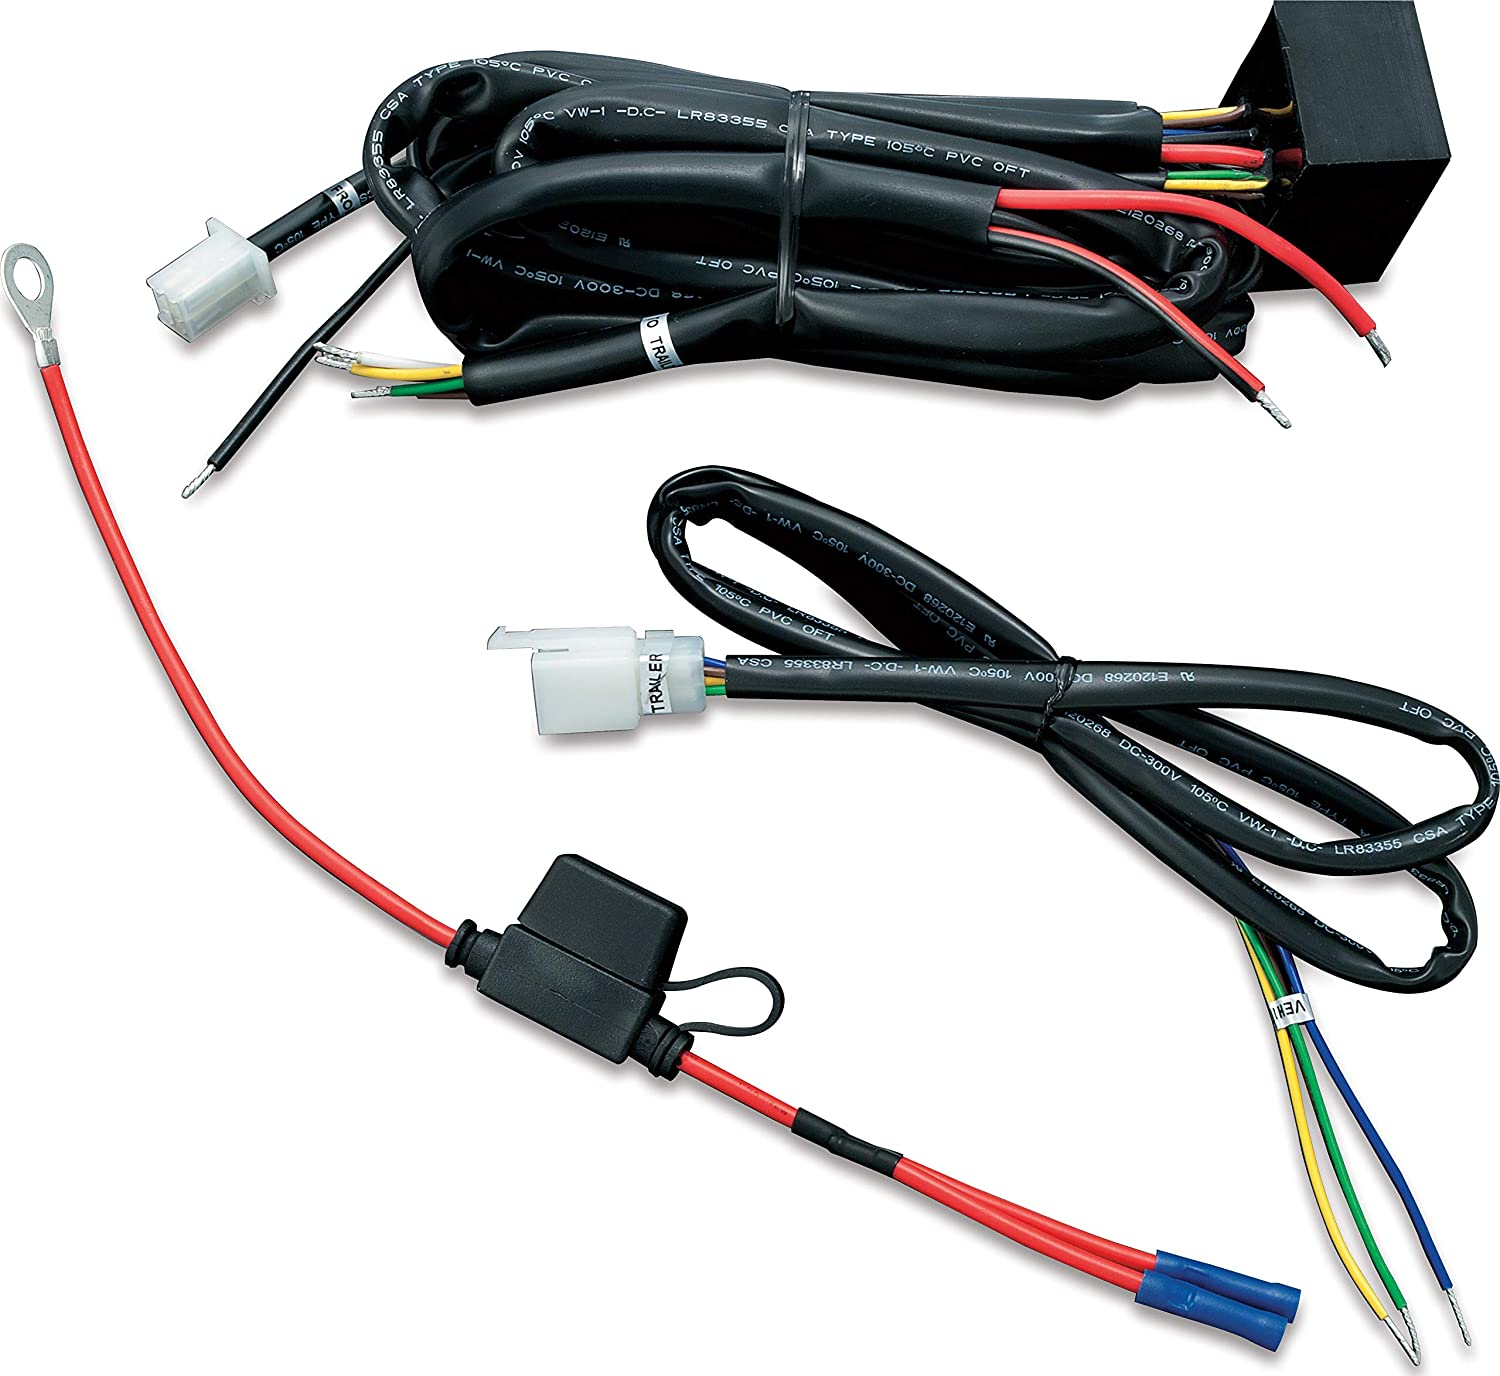 amazon.com: kuryakyn 7671 motorcycle accessory: universal trailer wiring  with relay harness for 12v applications: automotive  amazon.com